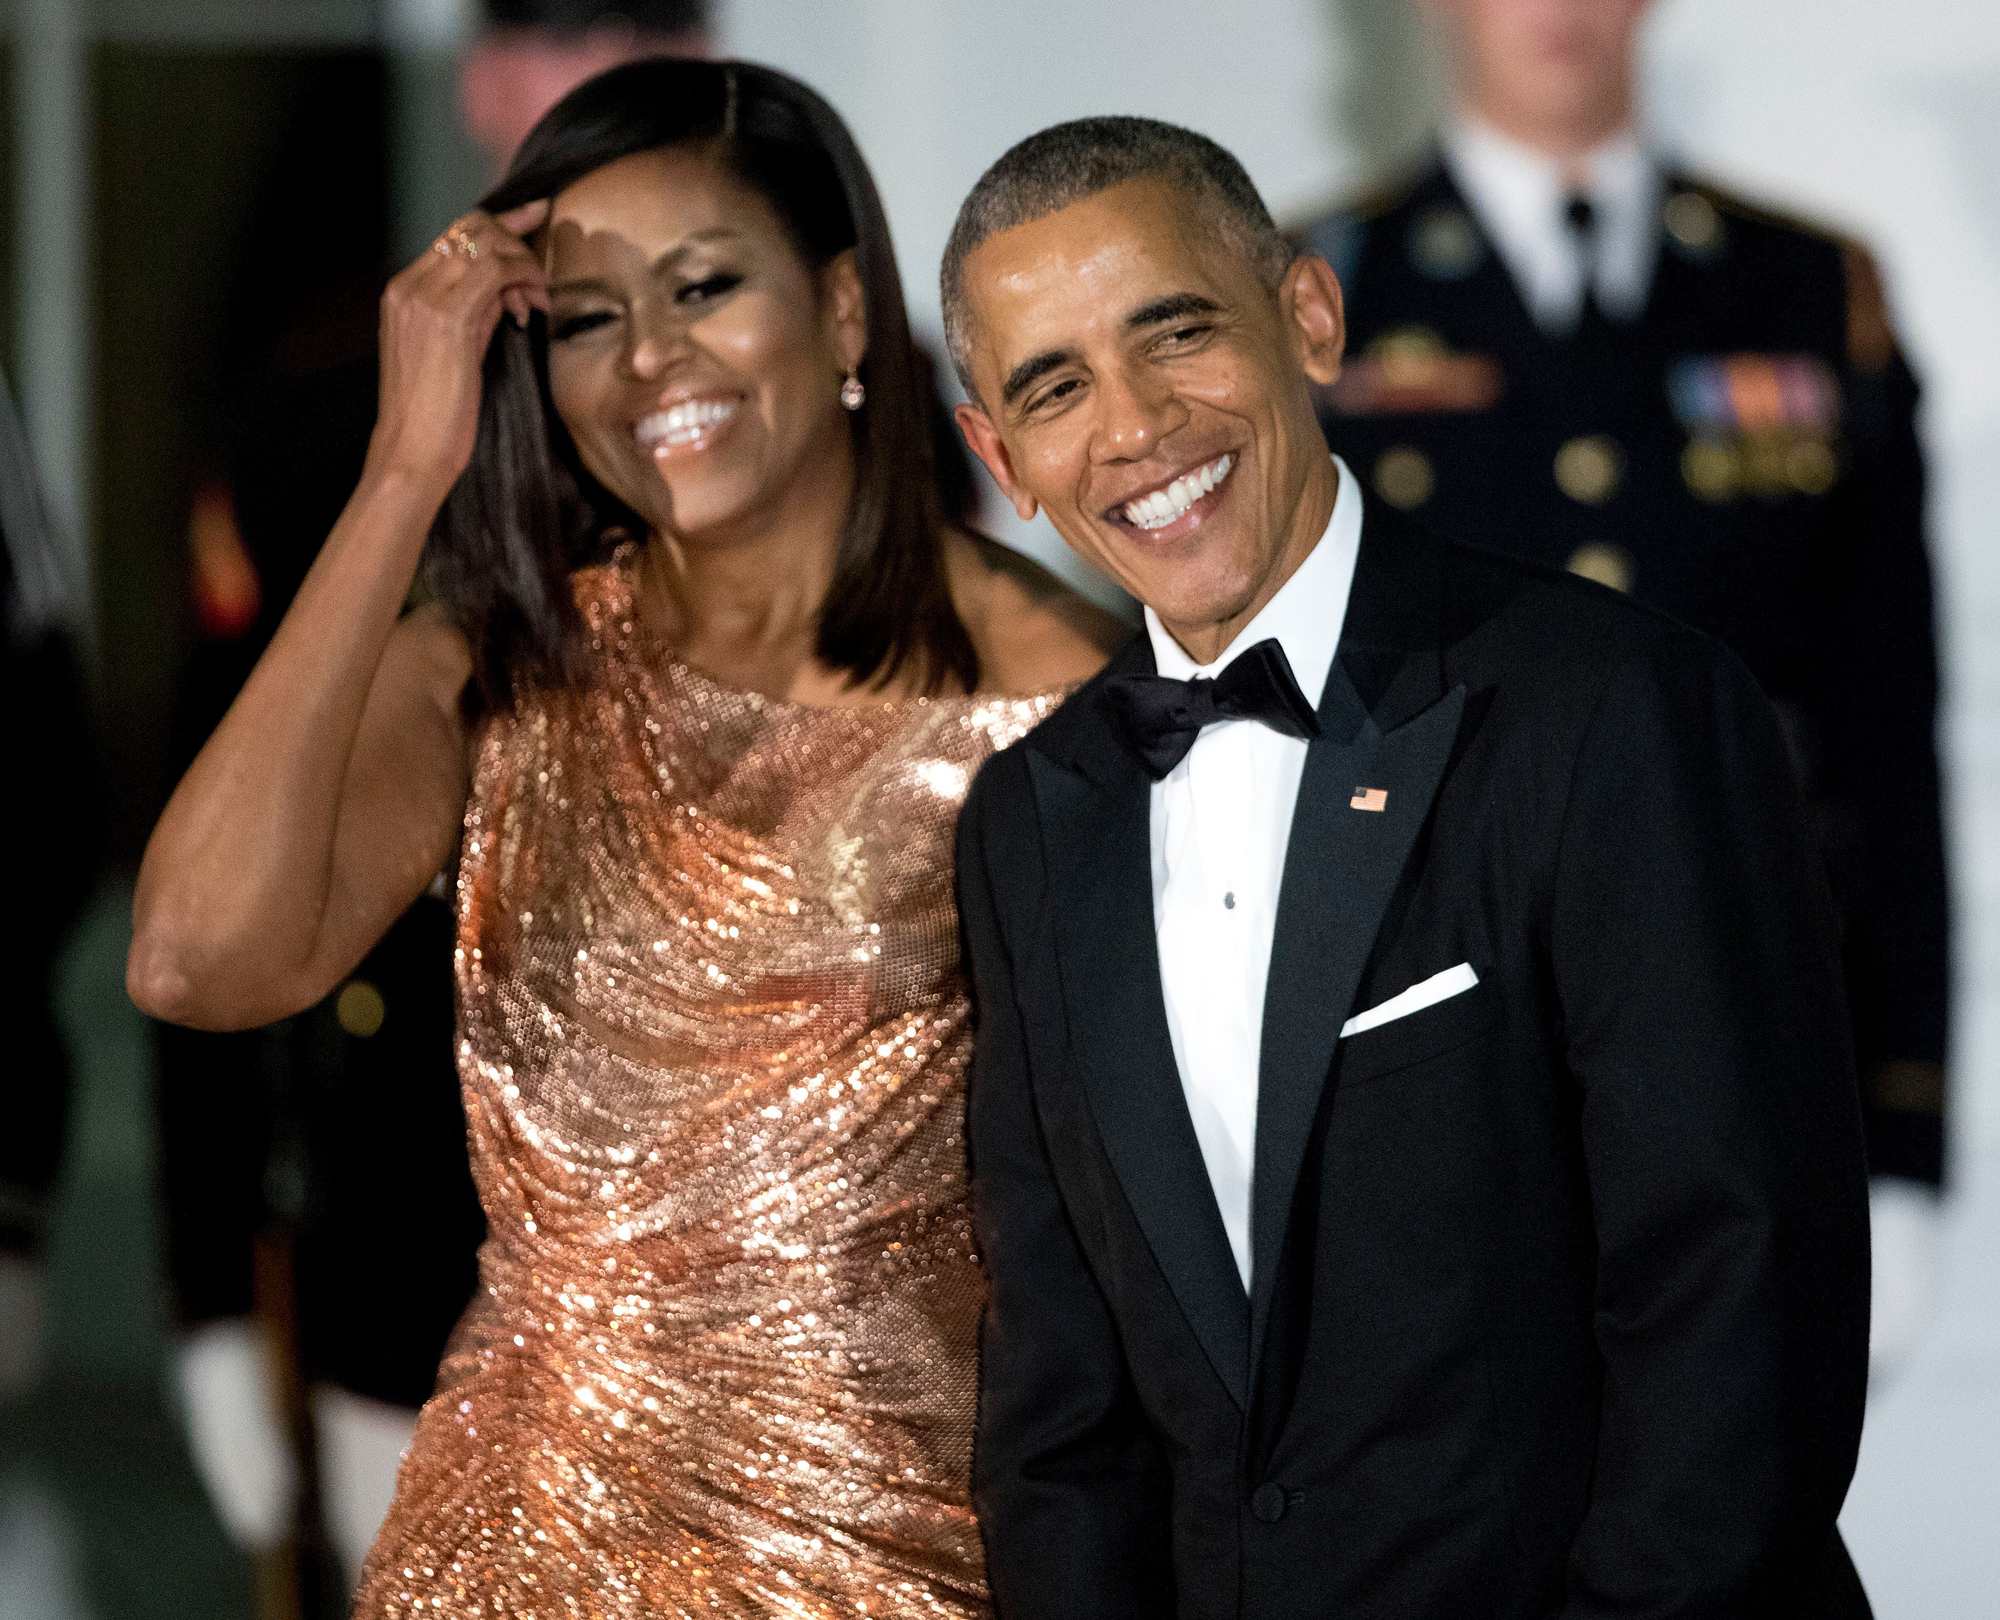 Barack Obama Wishes 'Love of My Life' Michelle a Happy 28th Anniversary